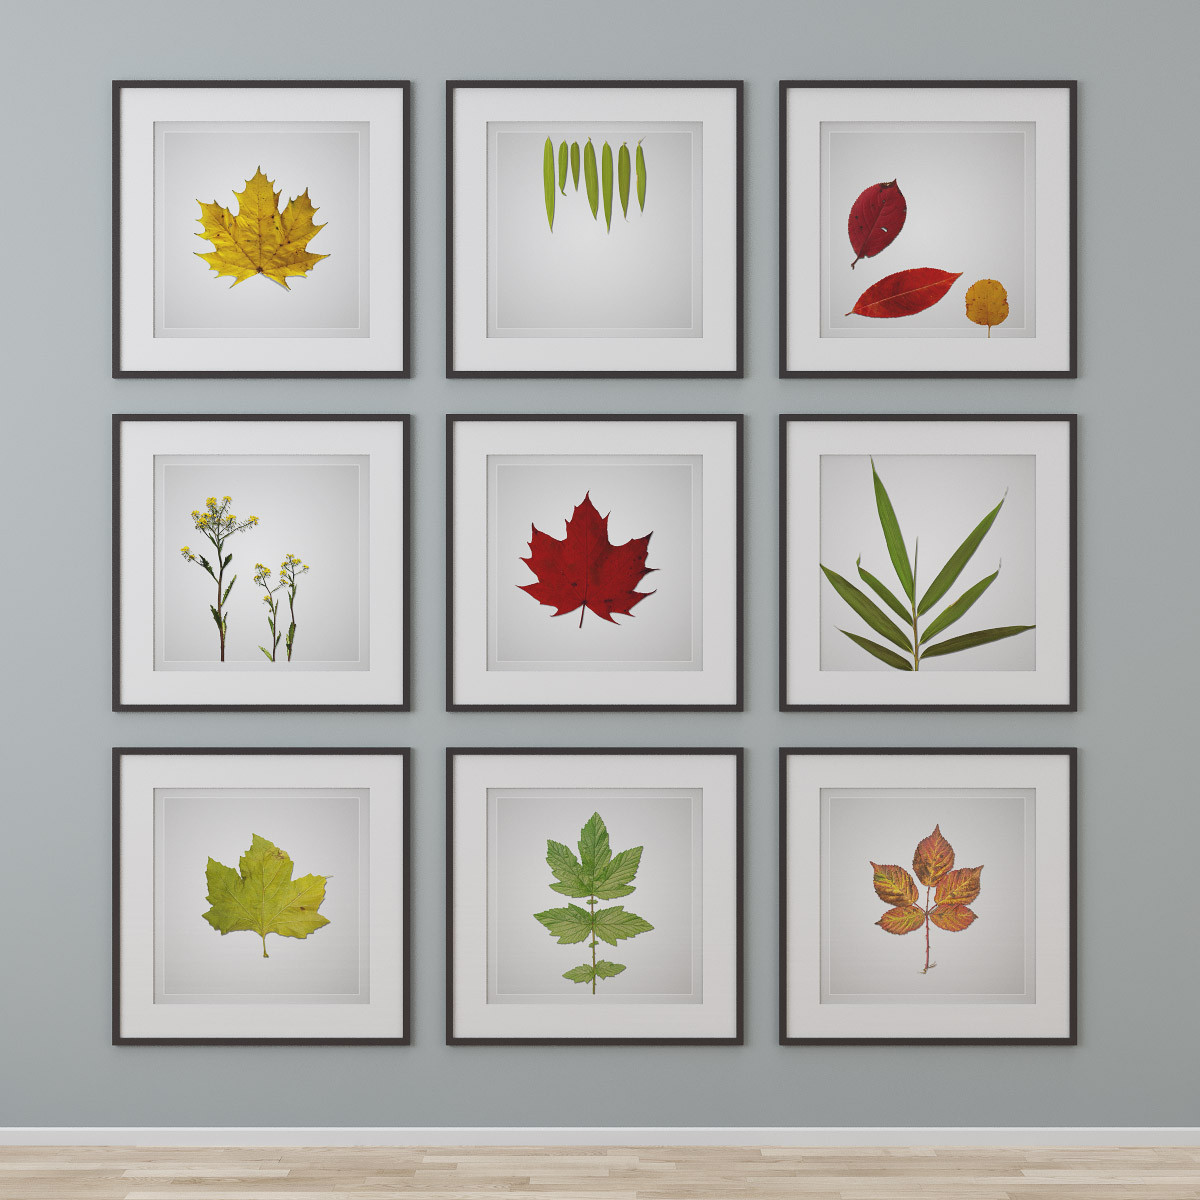 3d graphic design photo wall model